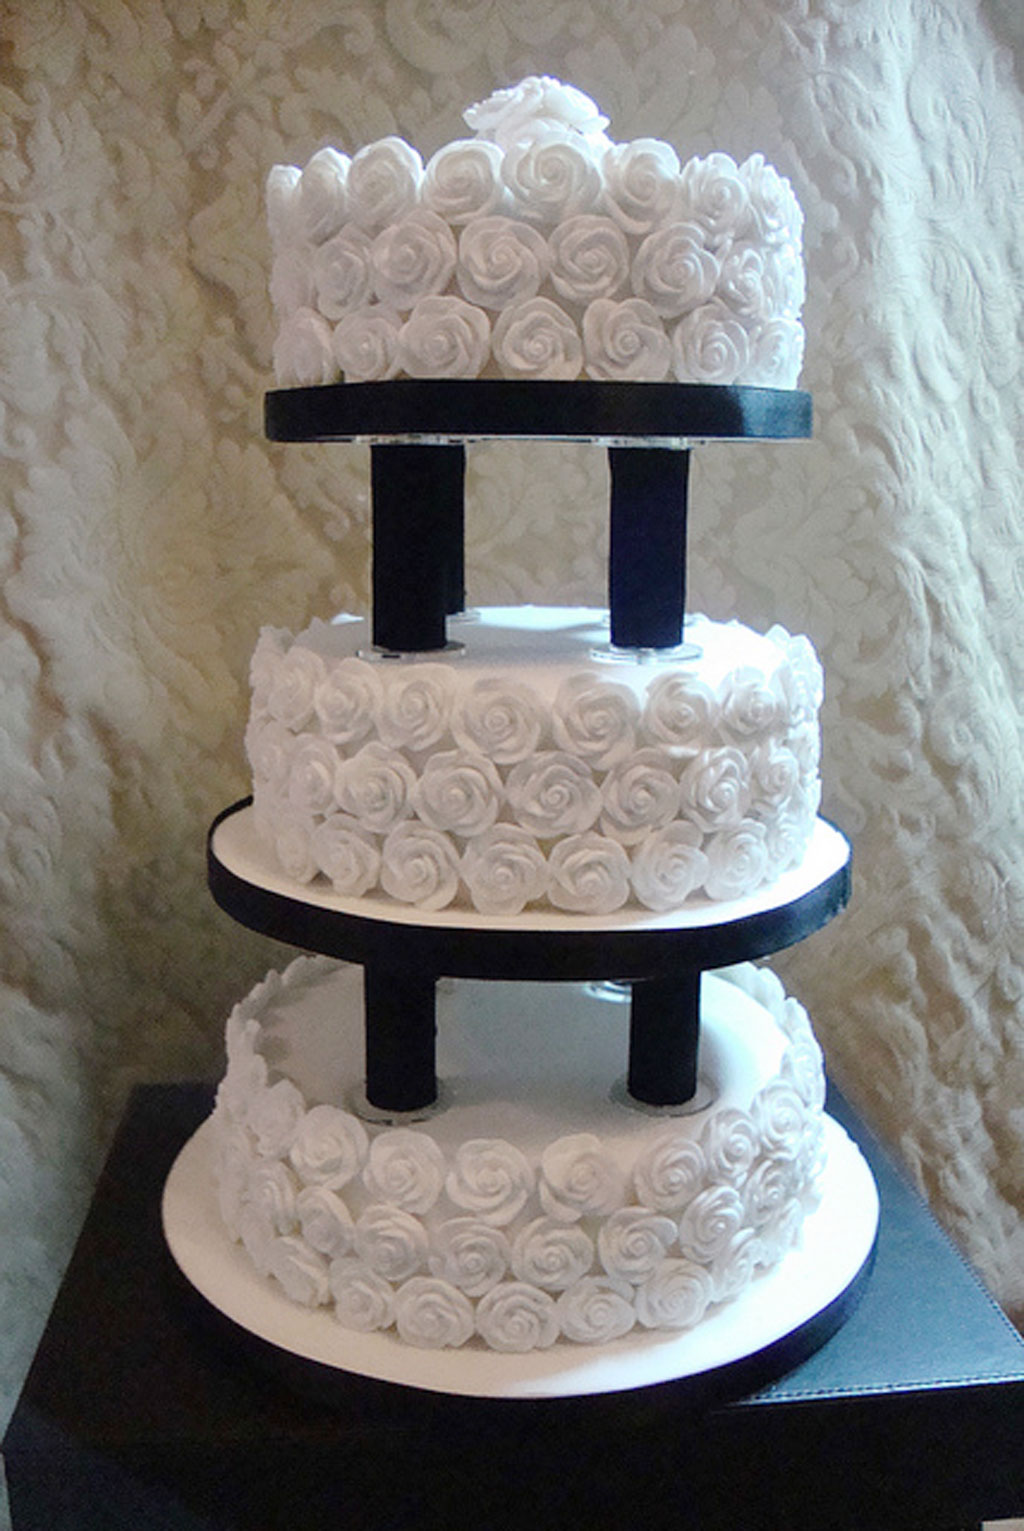 wedding cakes with pillars wedding cake pillars and plates wedding cake cake ideas 26077